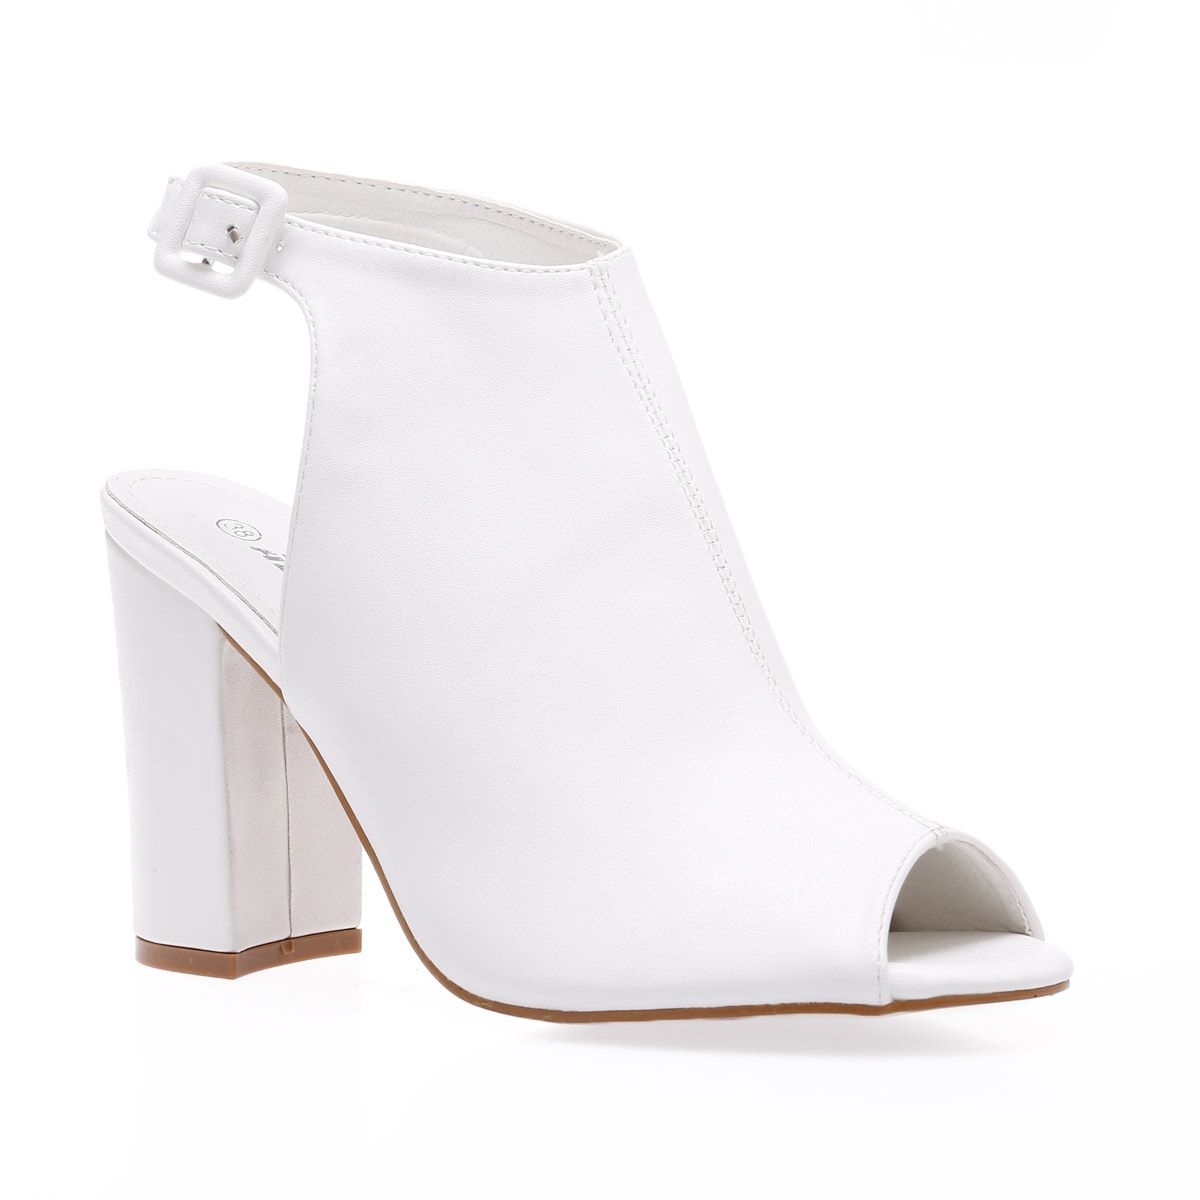 Bottines peep toes en simili cuir blanc